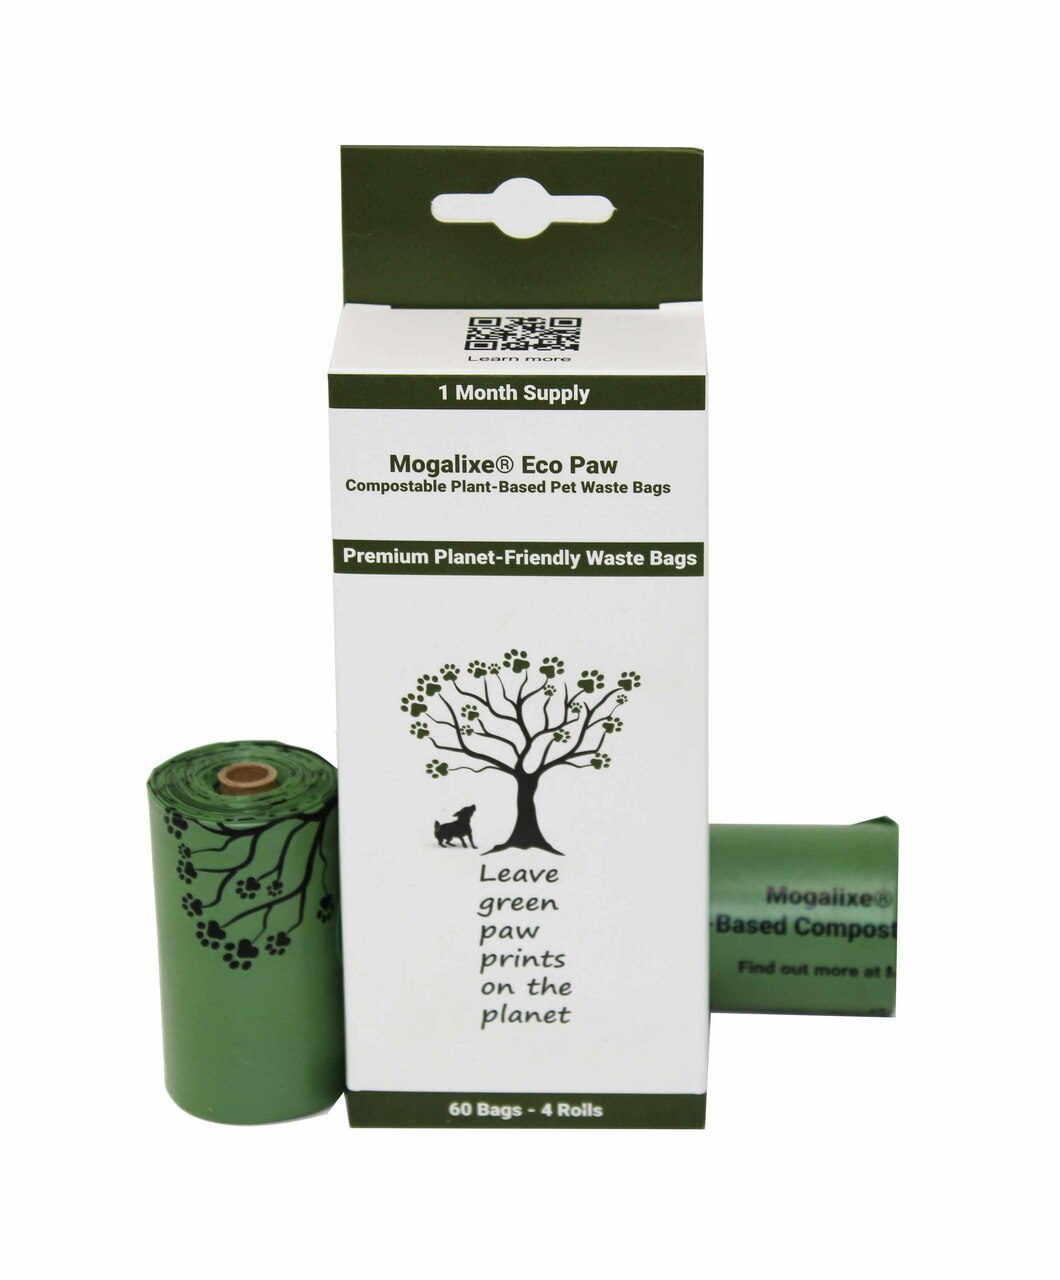 Compostable Pet Waste Bags (4 Rolls)